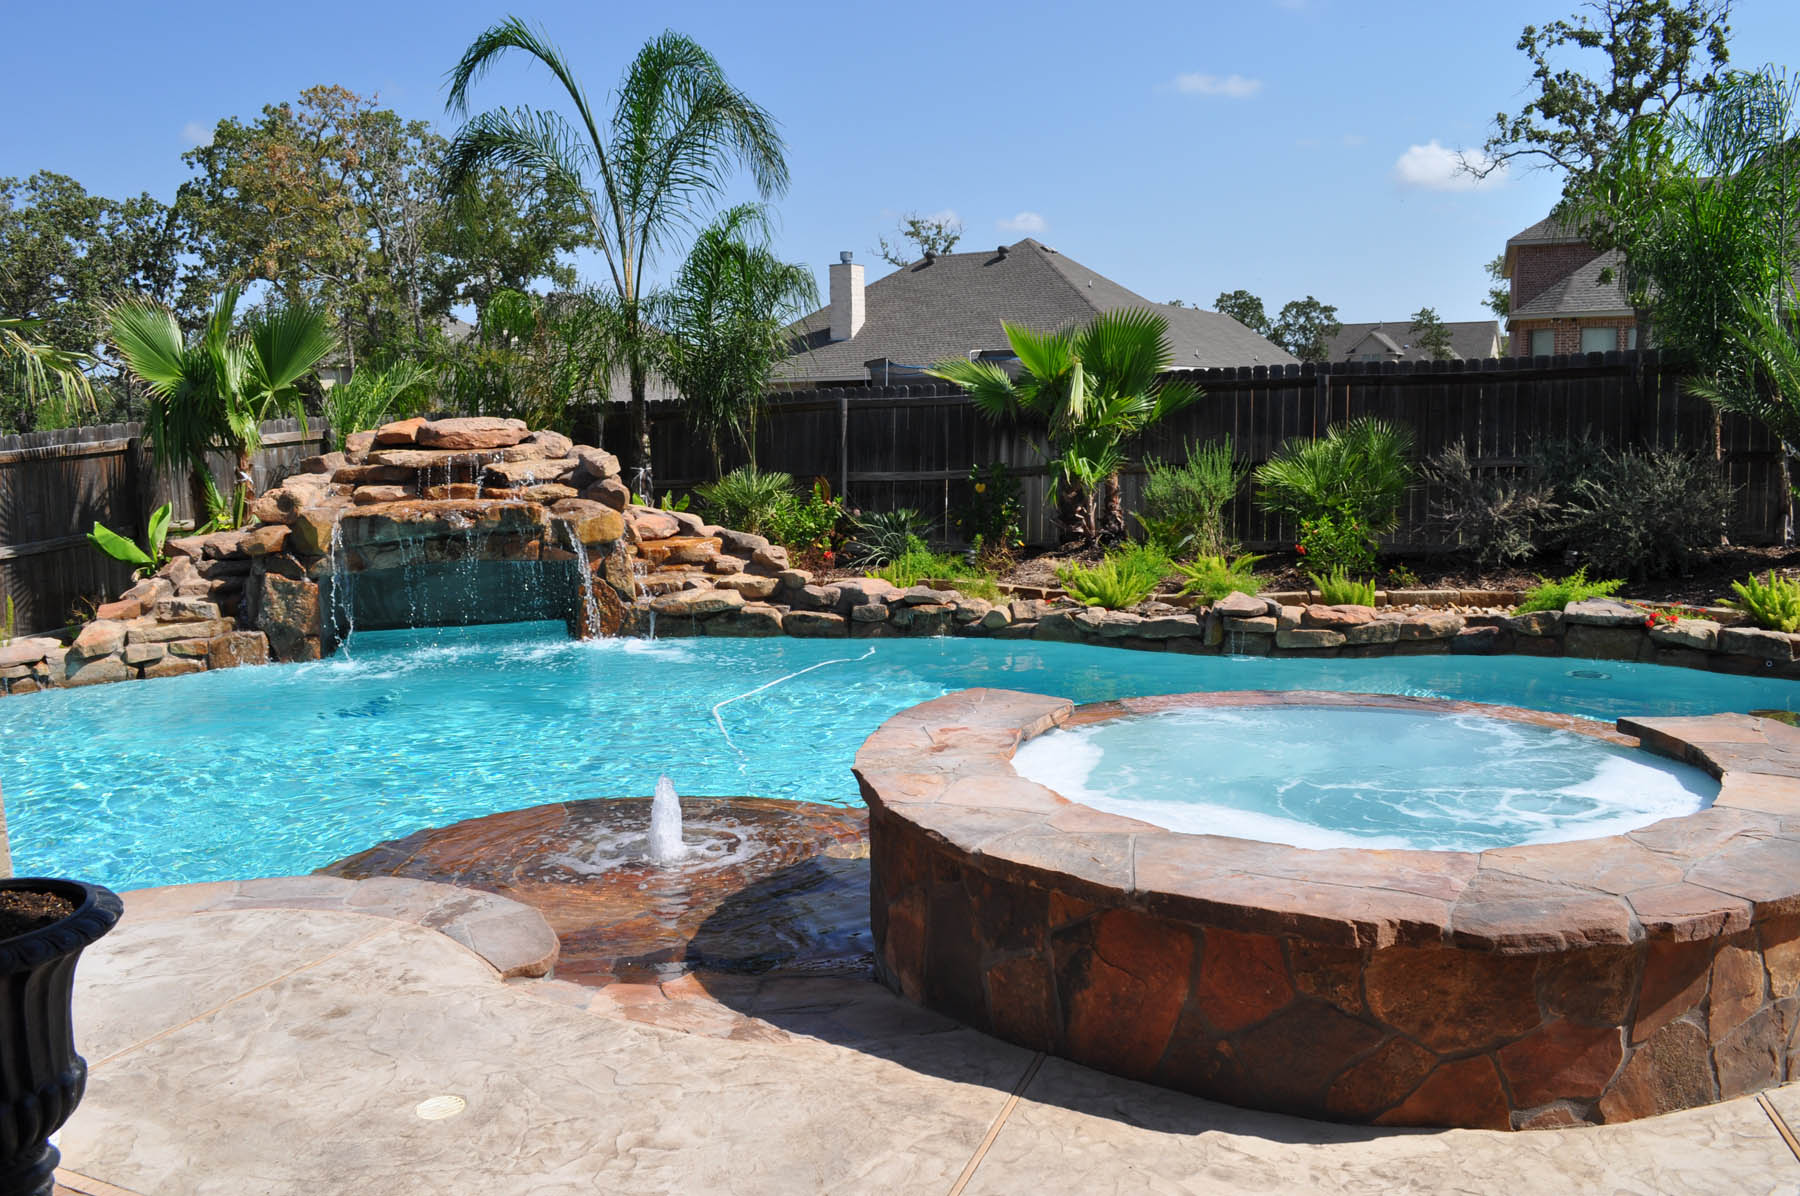 Tips for keeping your college station pool clean How to get a loan for a swimming pool